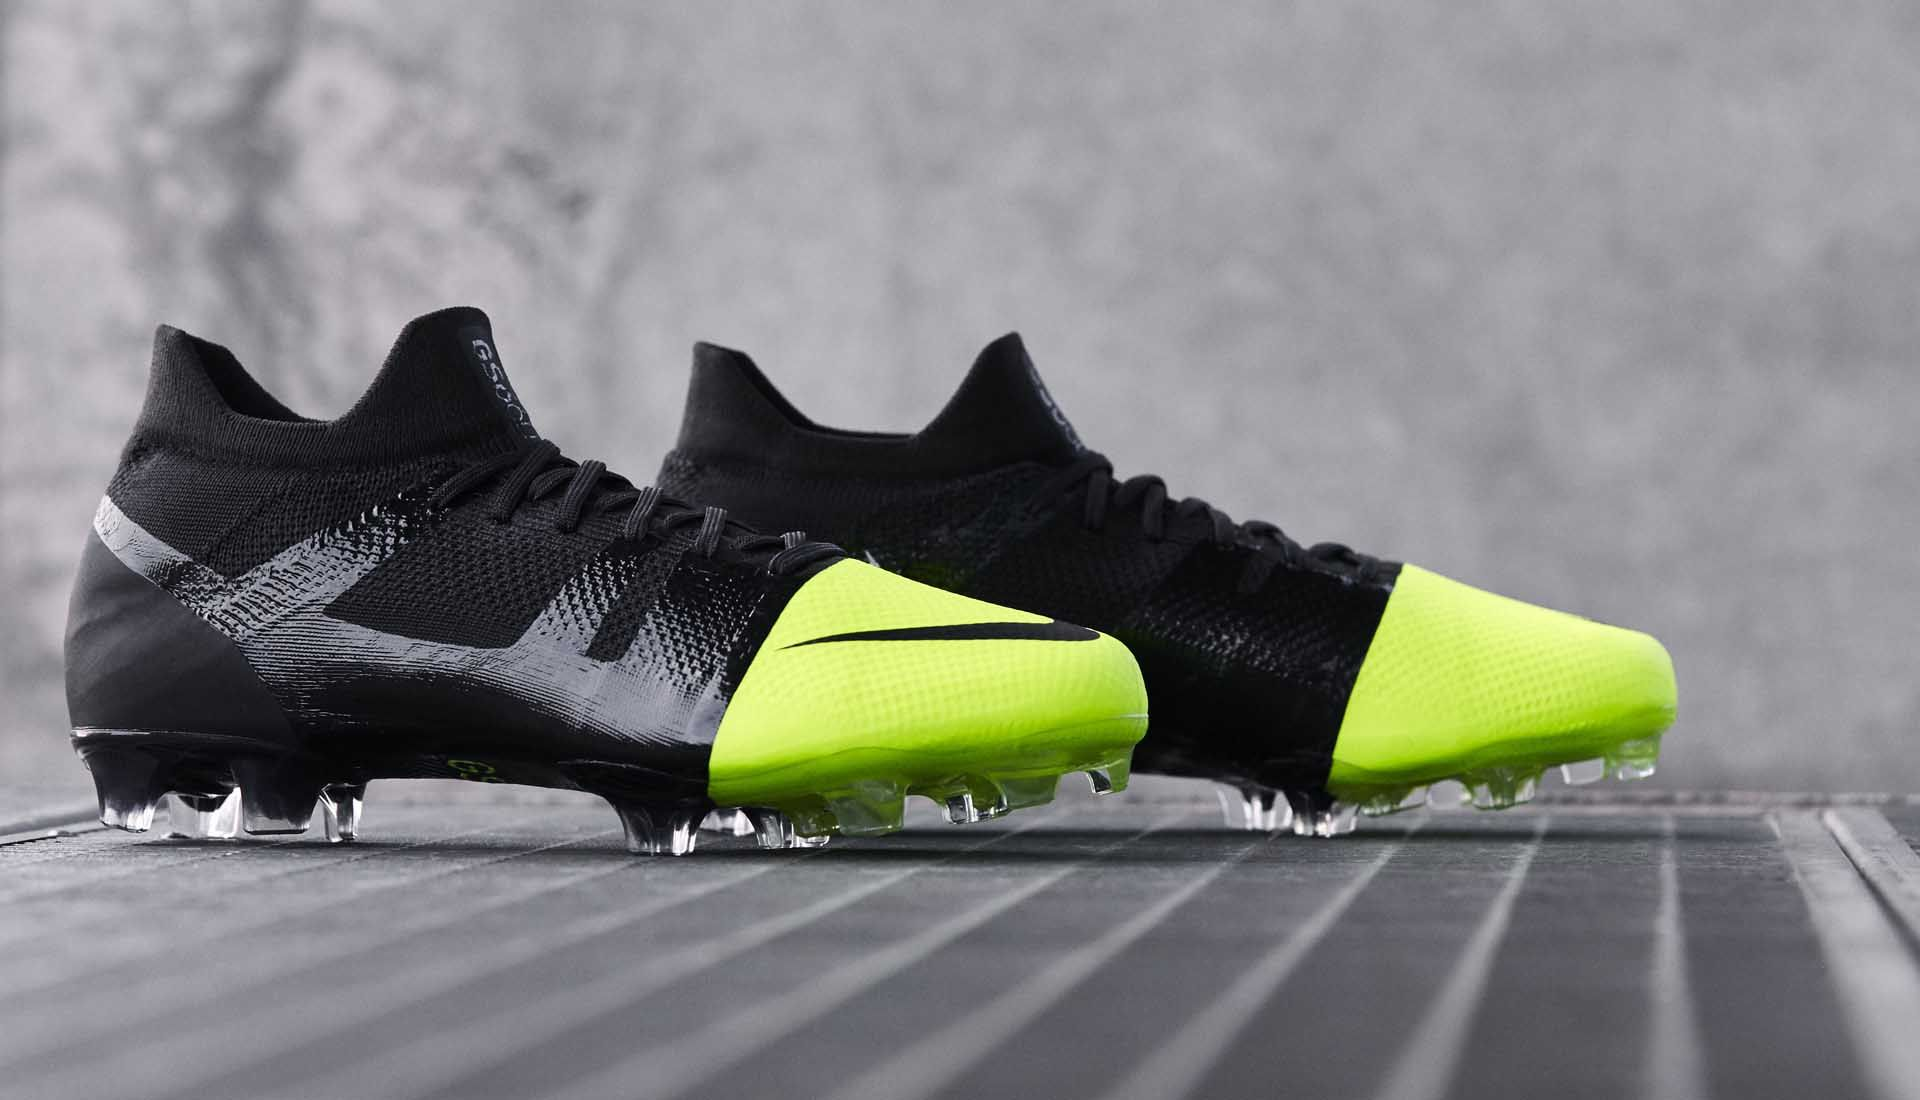 Nike Launch The Mercurial Superfly GS